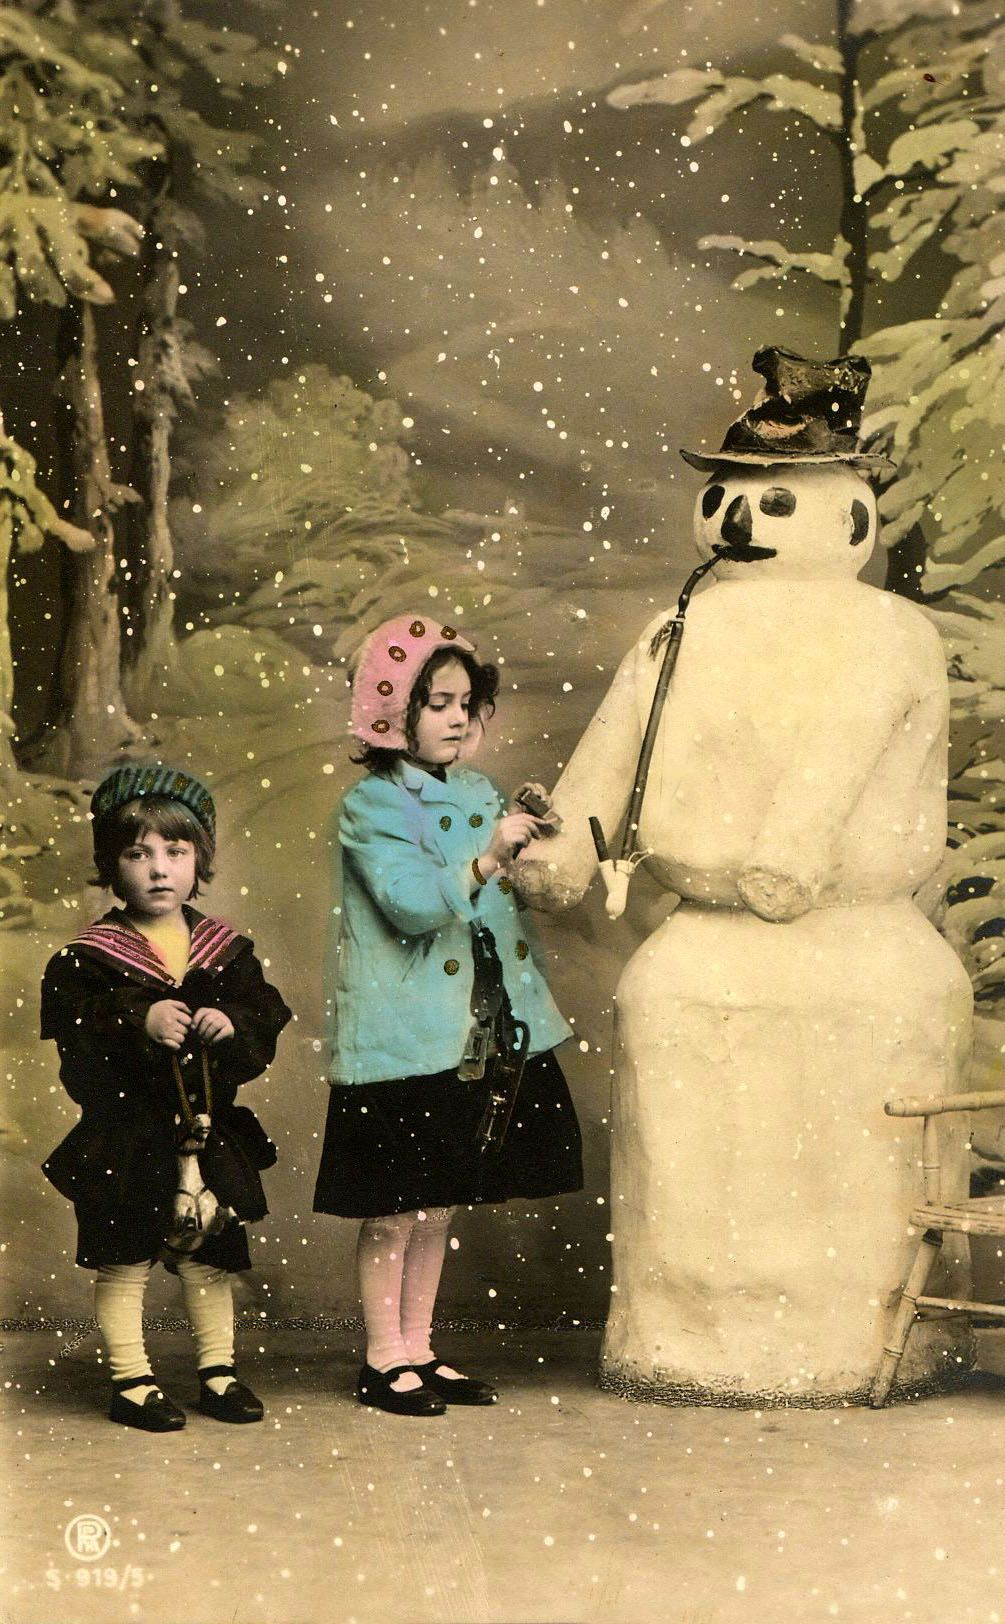 hand-tinted old postcard of winter scene - two children with snowman